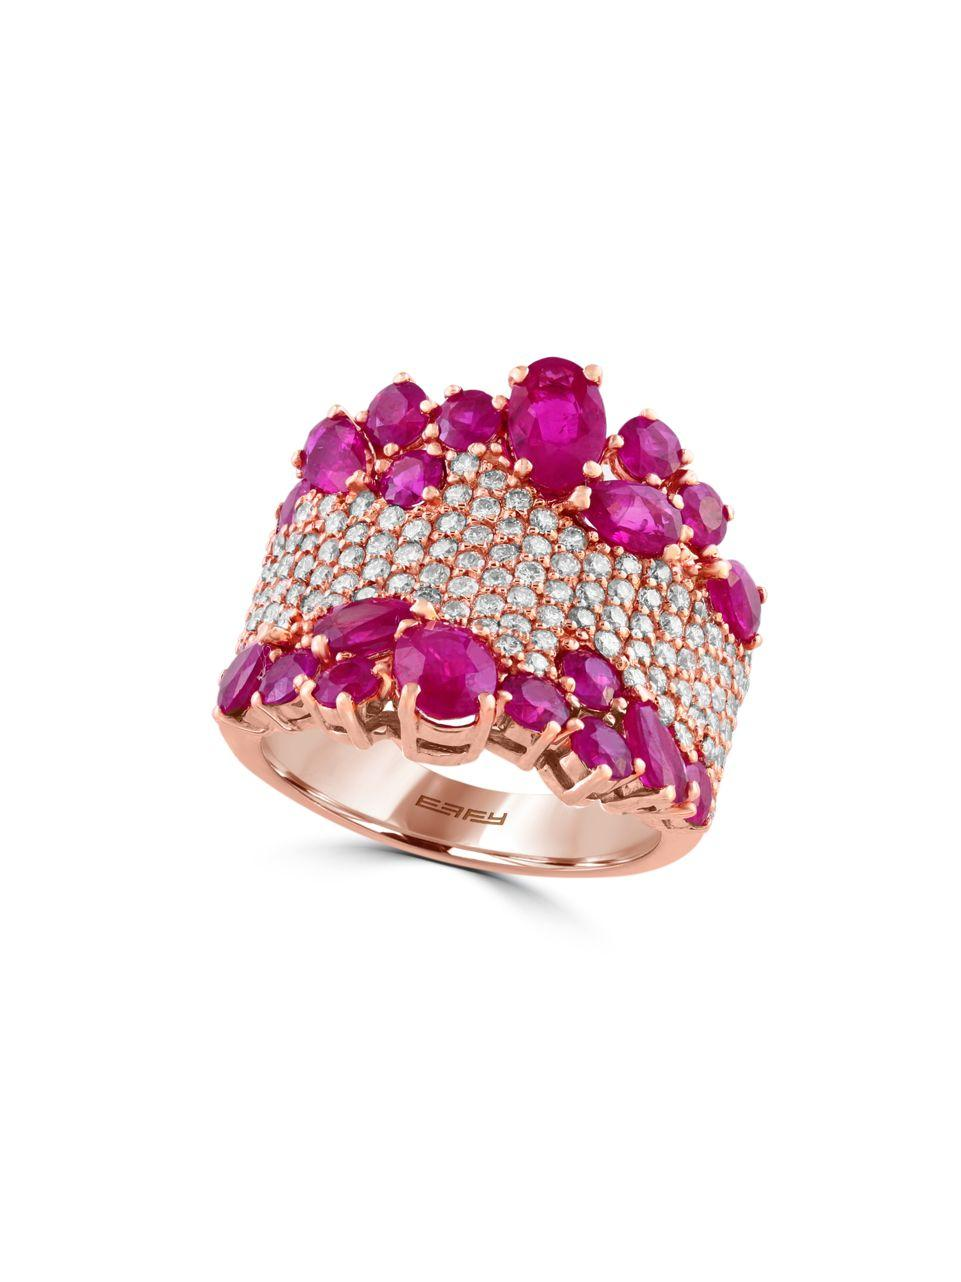 Effy Amore 1 12 Tcw Diamond Ruby And 14k Rose Gold Ring